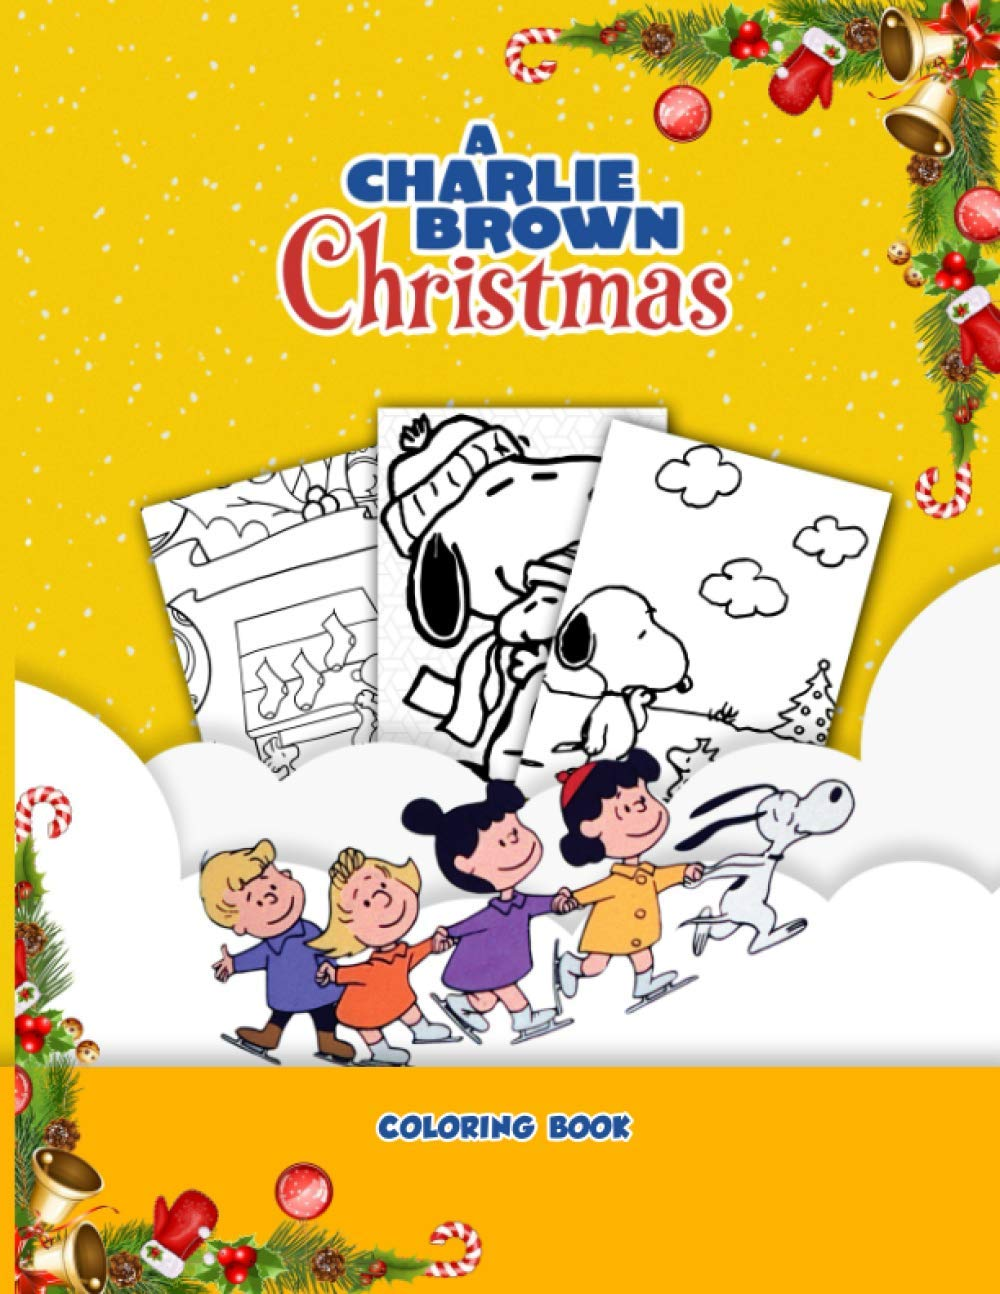 Amazon Com Charlie Brown Christmas Coloring Book 50 Coloring Pages Perfect Book Coloring Books For Adults And Kids Color To Relax 9798554054754 Hayden Sayers Books